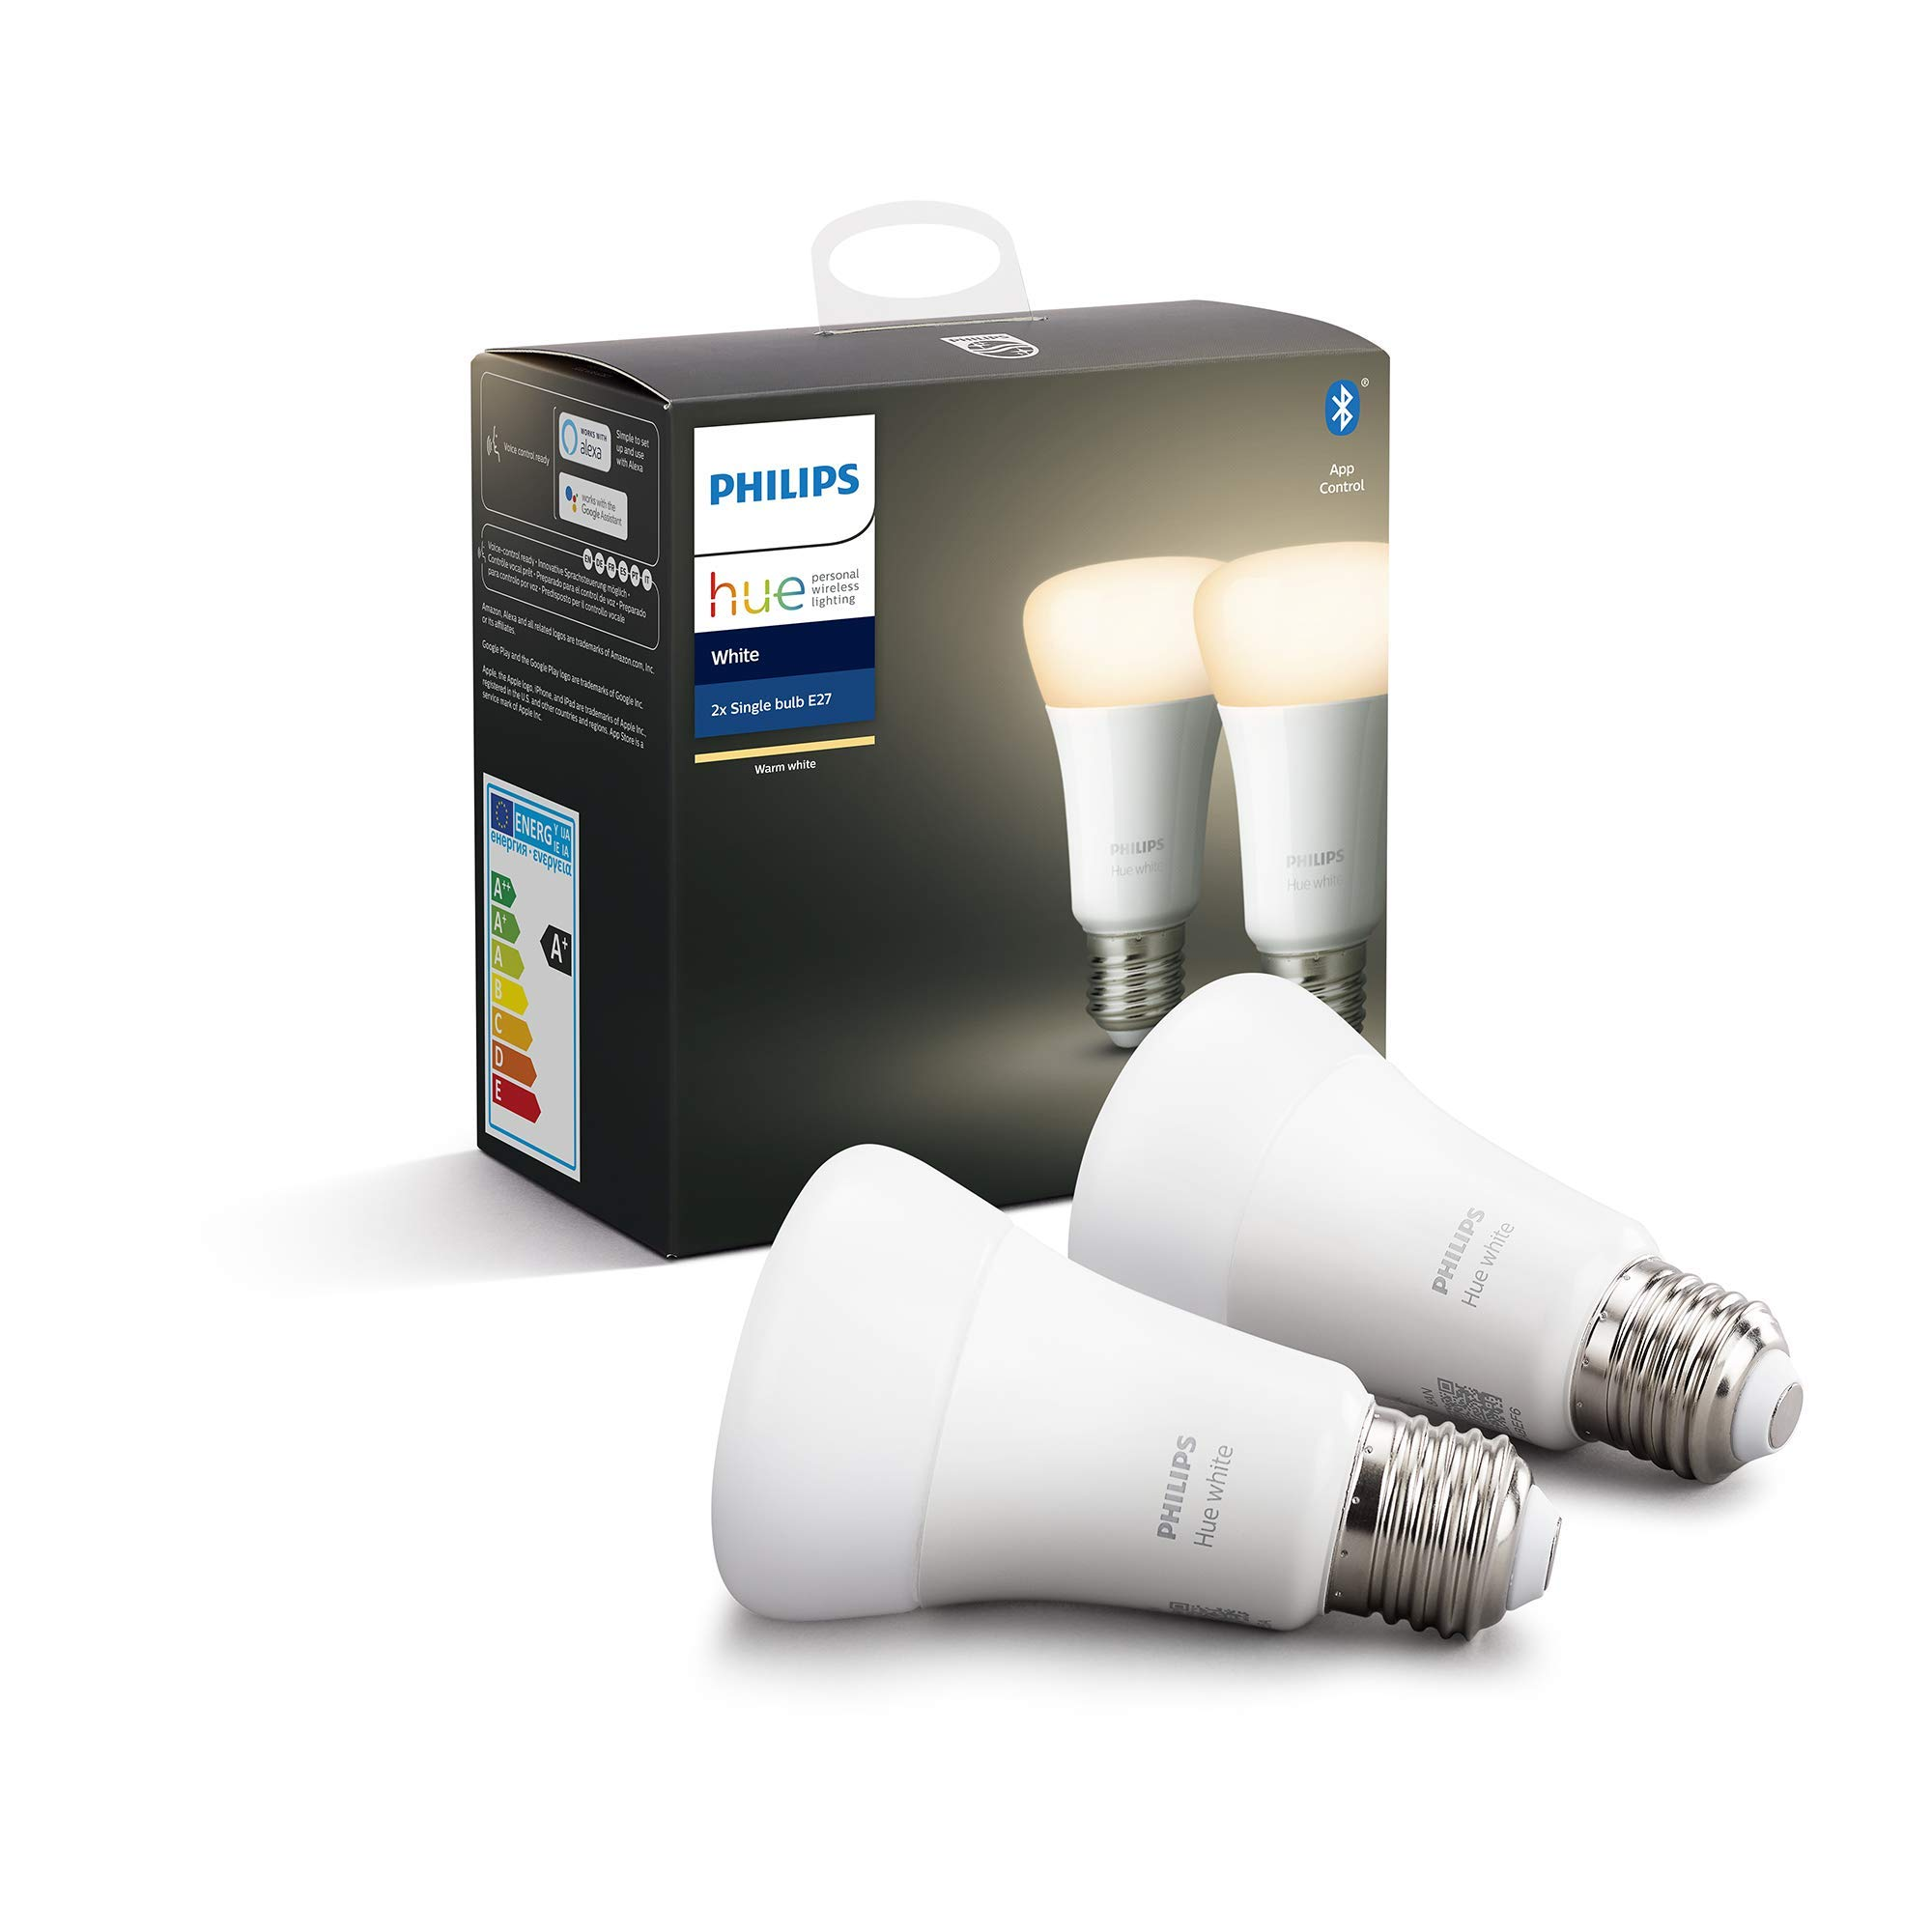 Philips Hue Pack de 2 Bombillas LED Inteligentes E27, con Bluetooth, Luz Blanca Cálida, Compatible con Alexa y Google Home